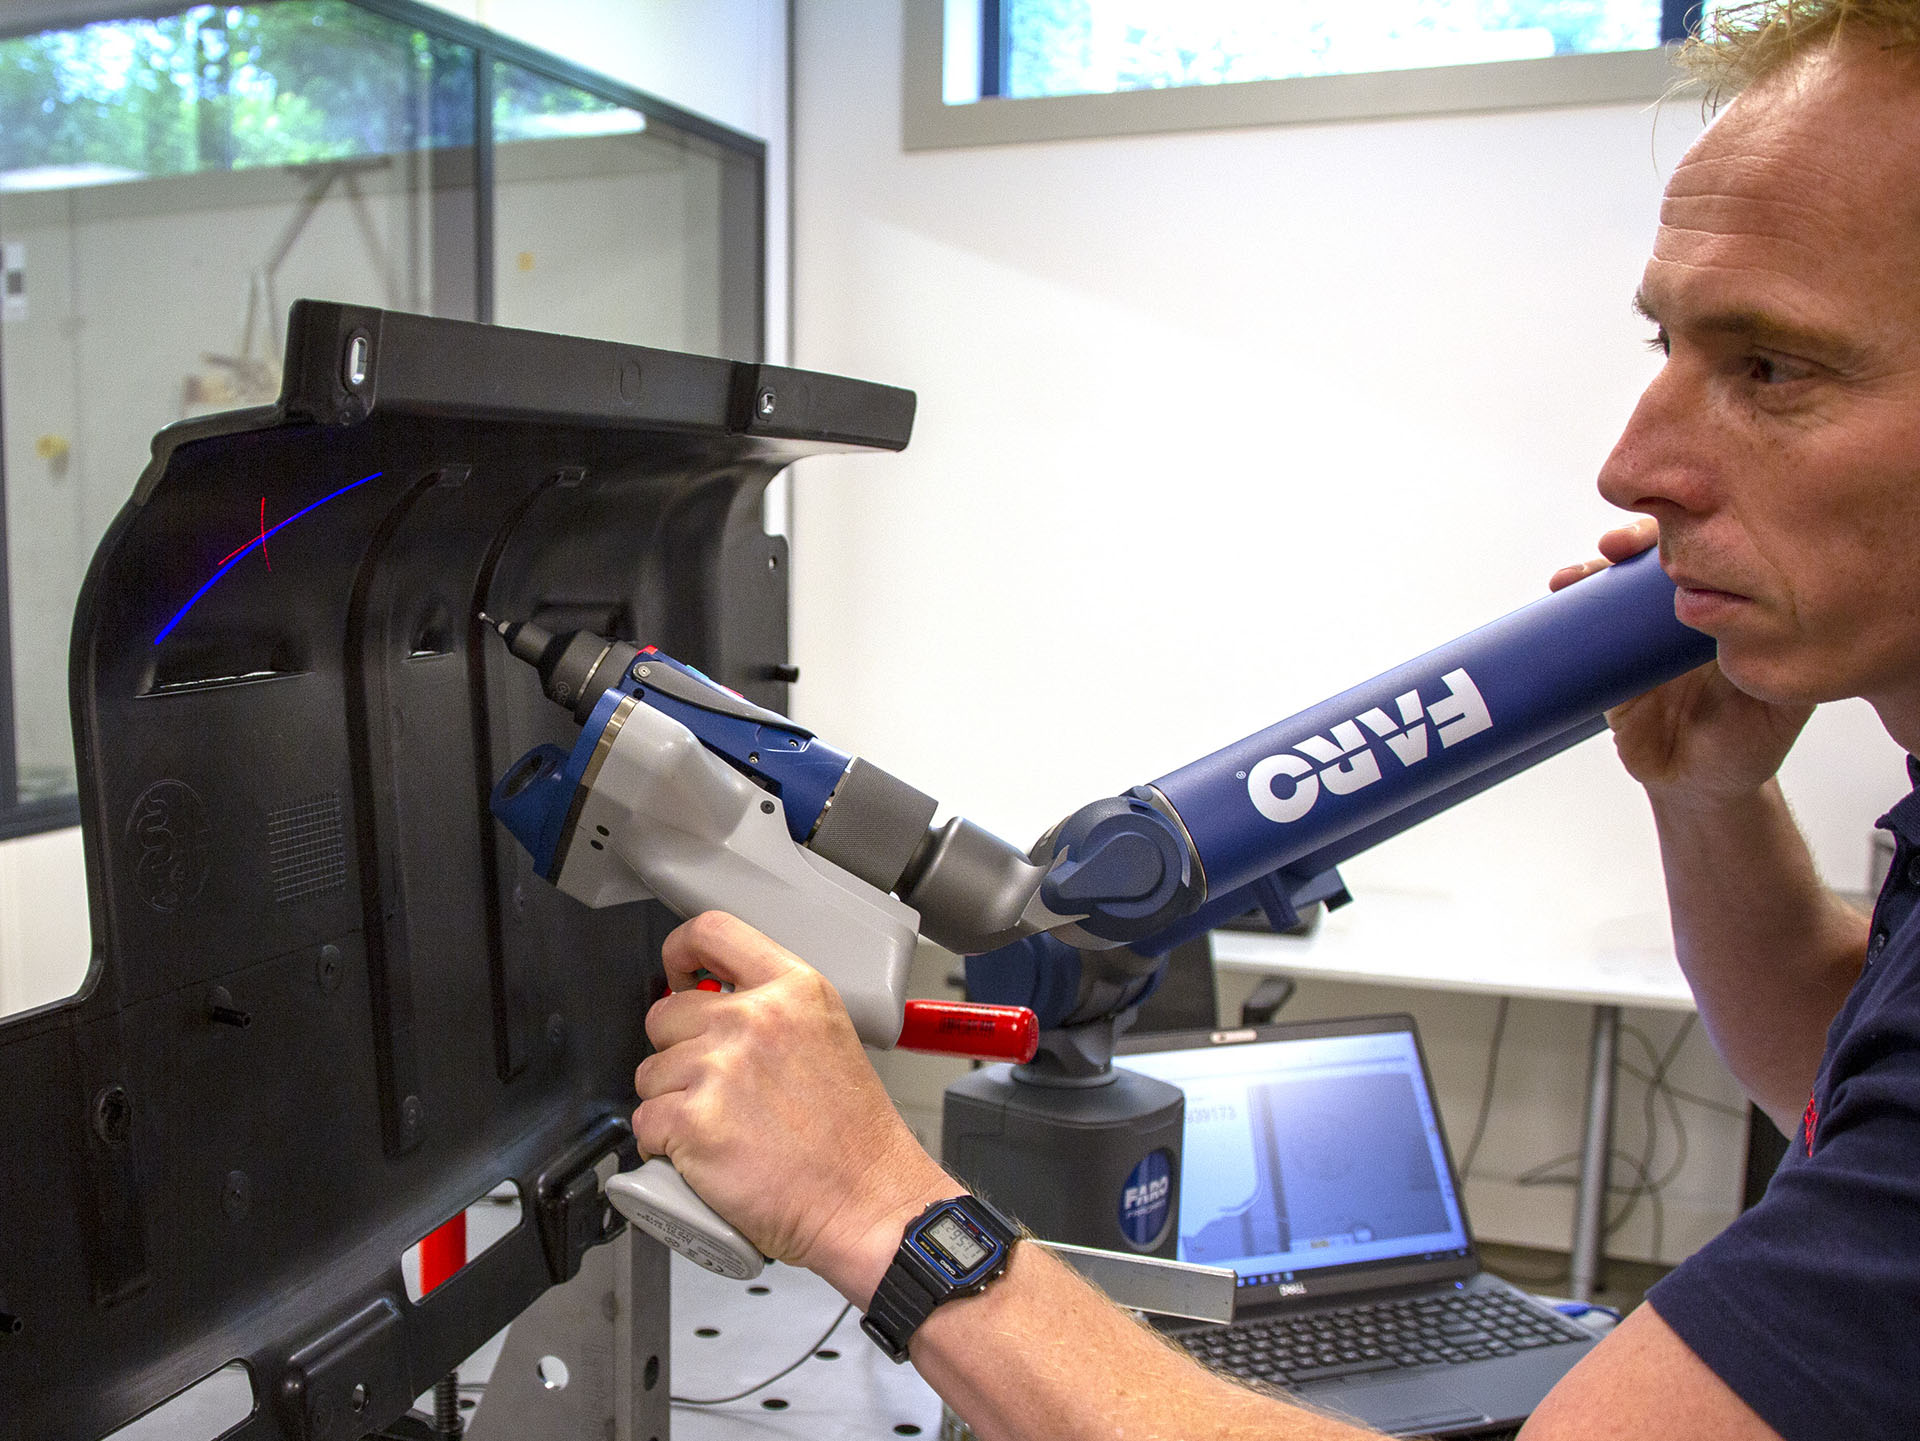 3D scanning of a plastic part with the FARO Laser Line Probe